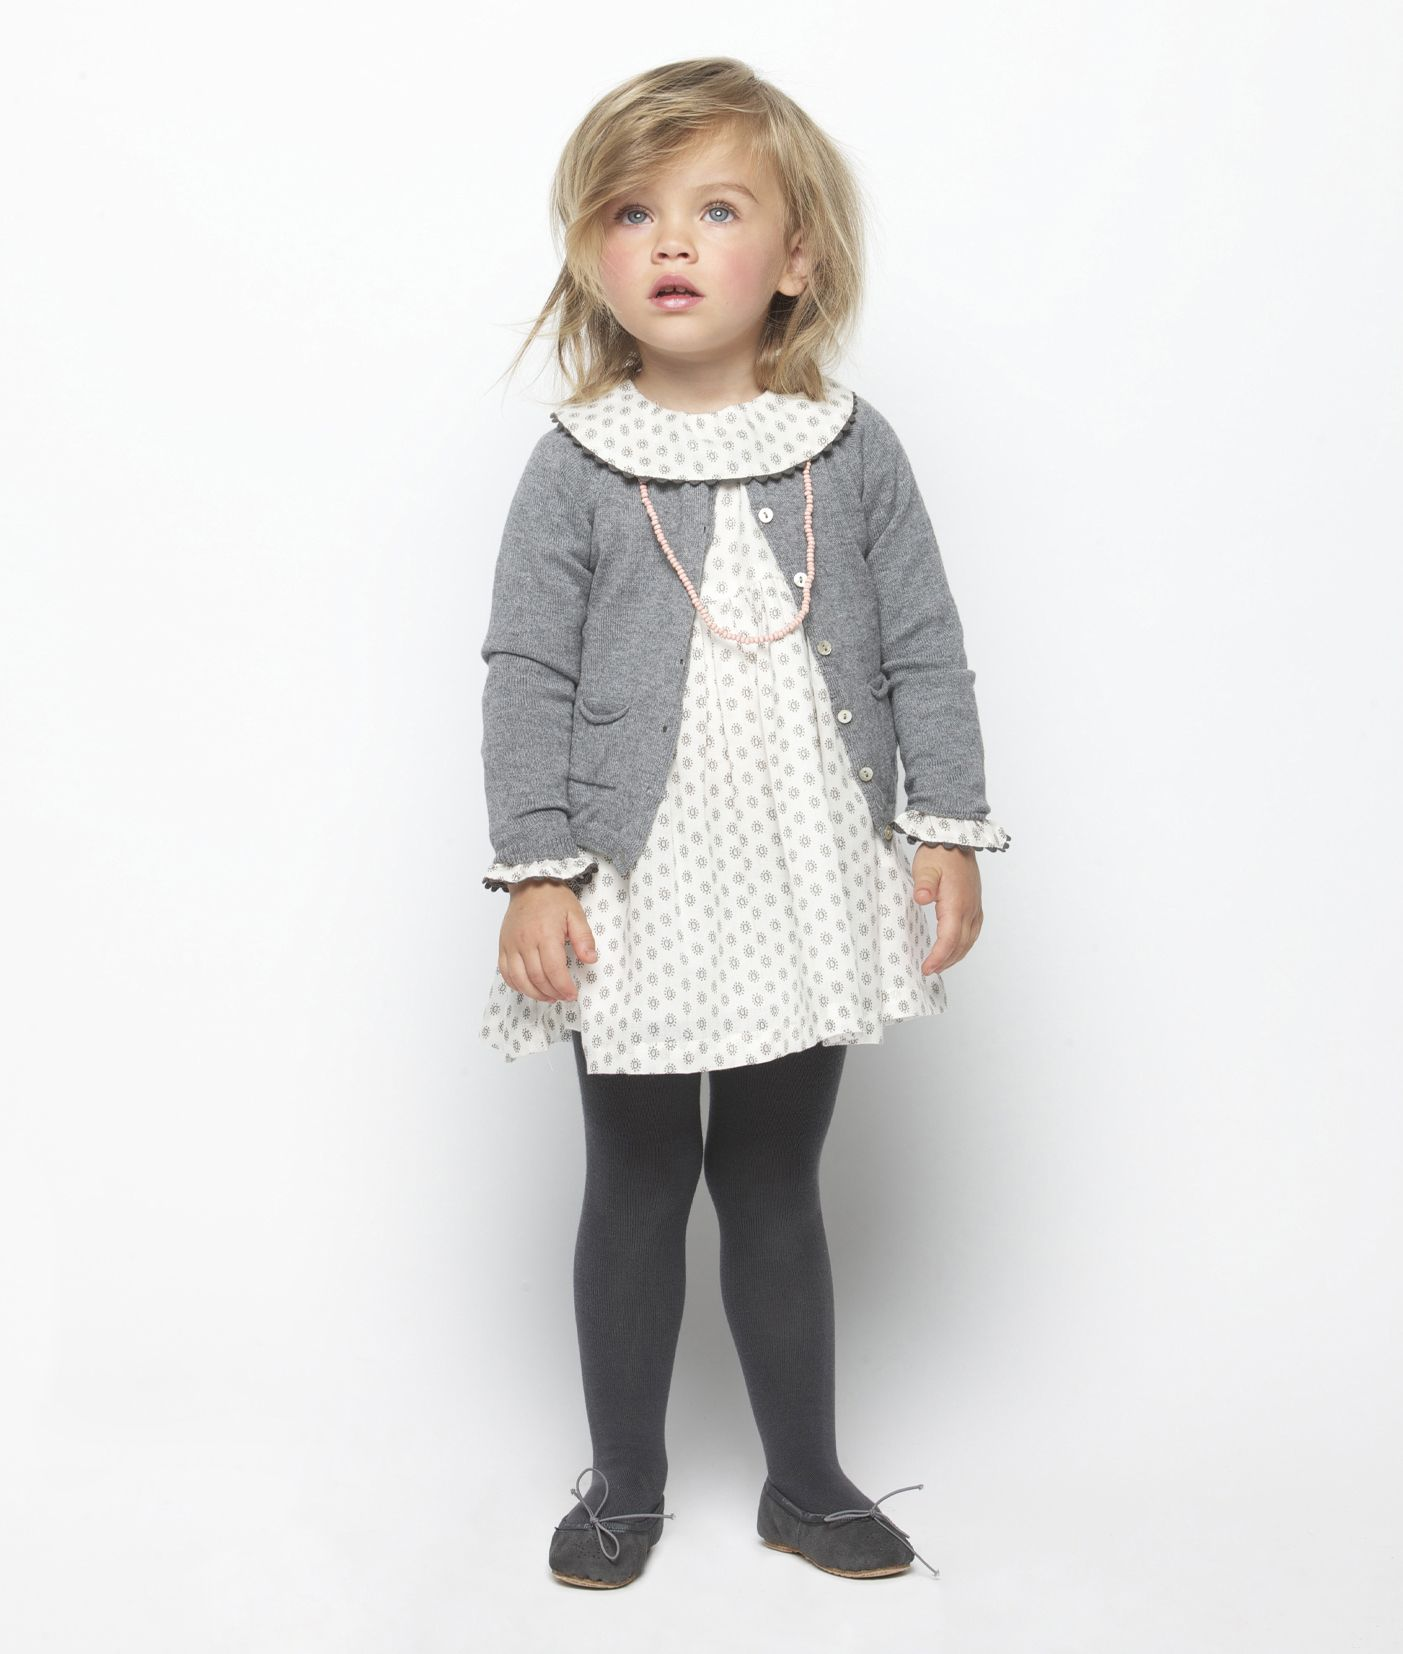 Girls Vintage Style Dress Tights And Sweater